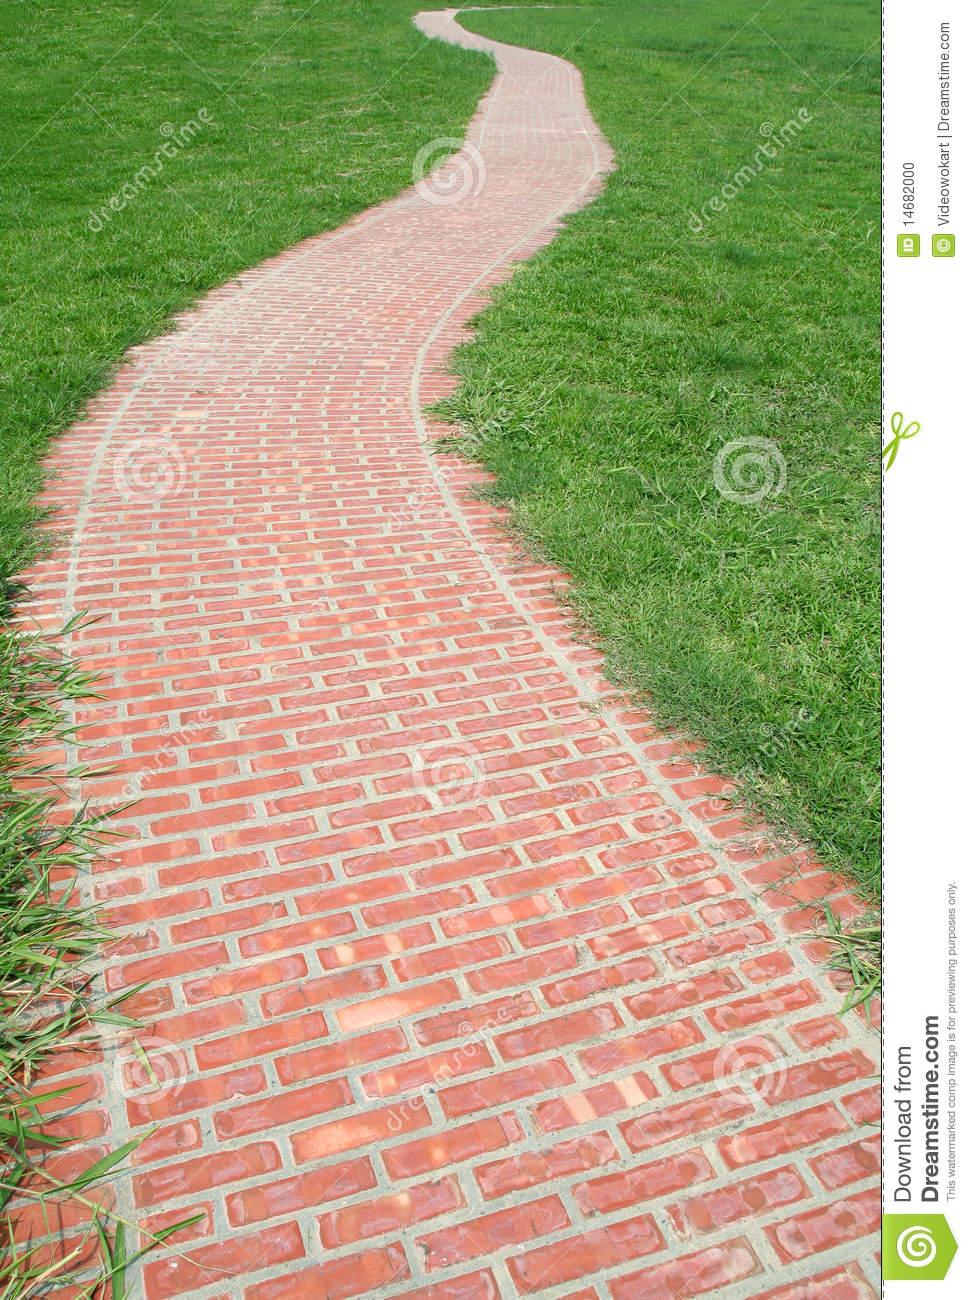 Road clipart brick path #12